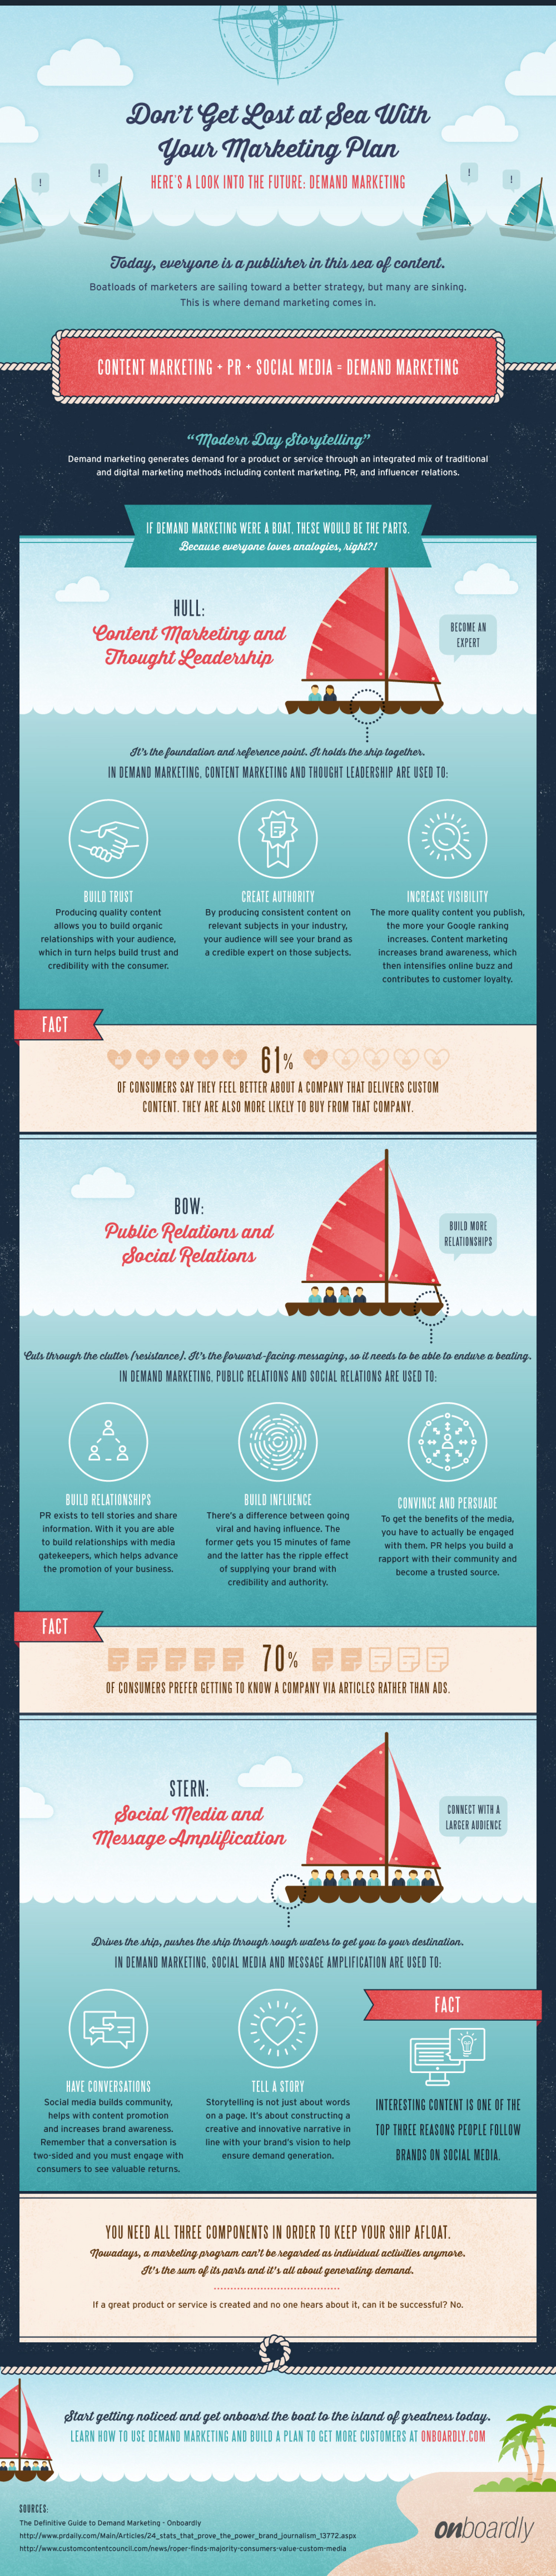 Don't Get Lost at Sea With Your Marketing Plan Infographic